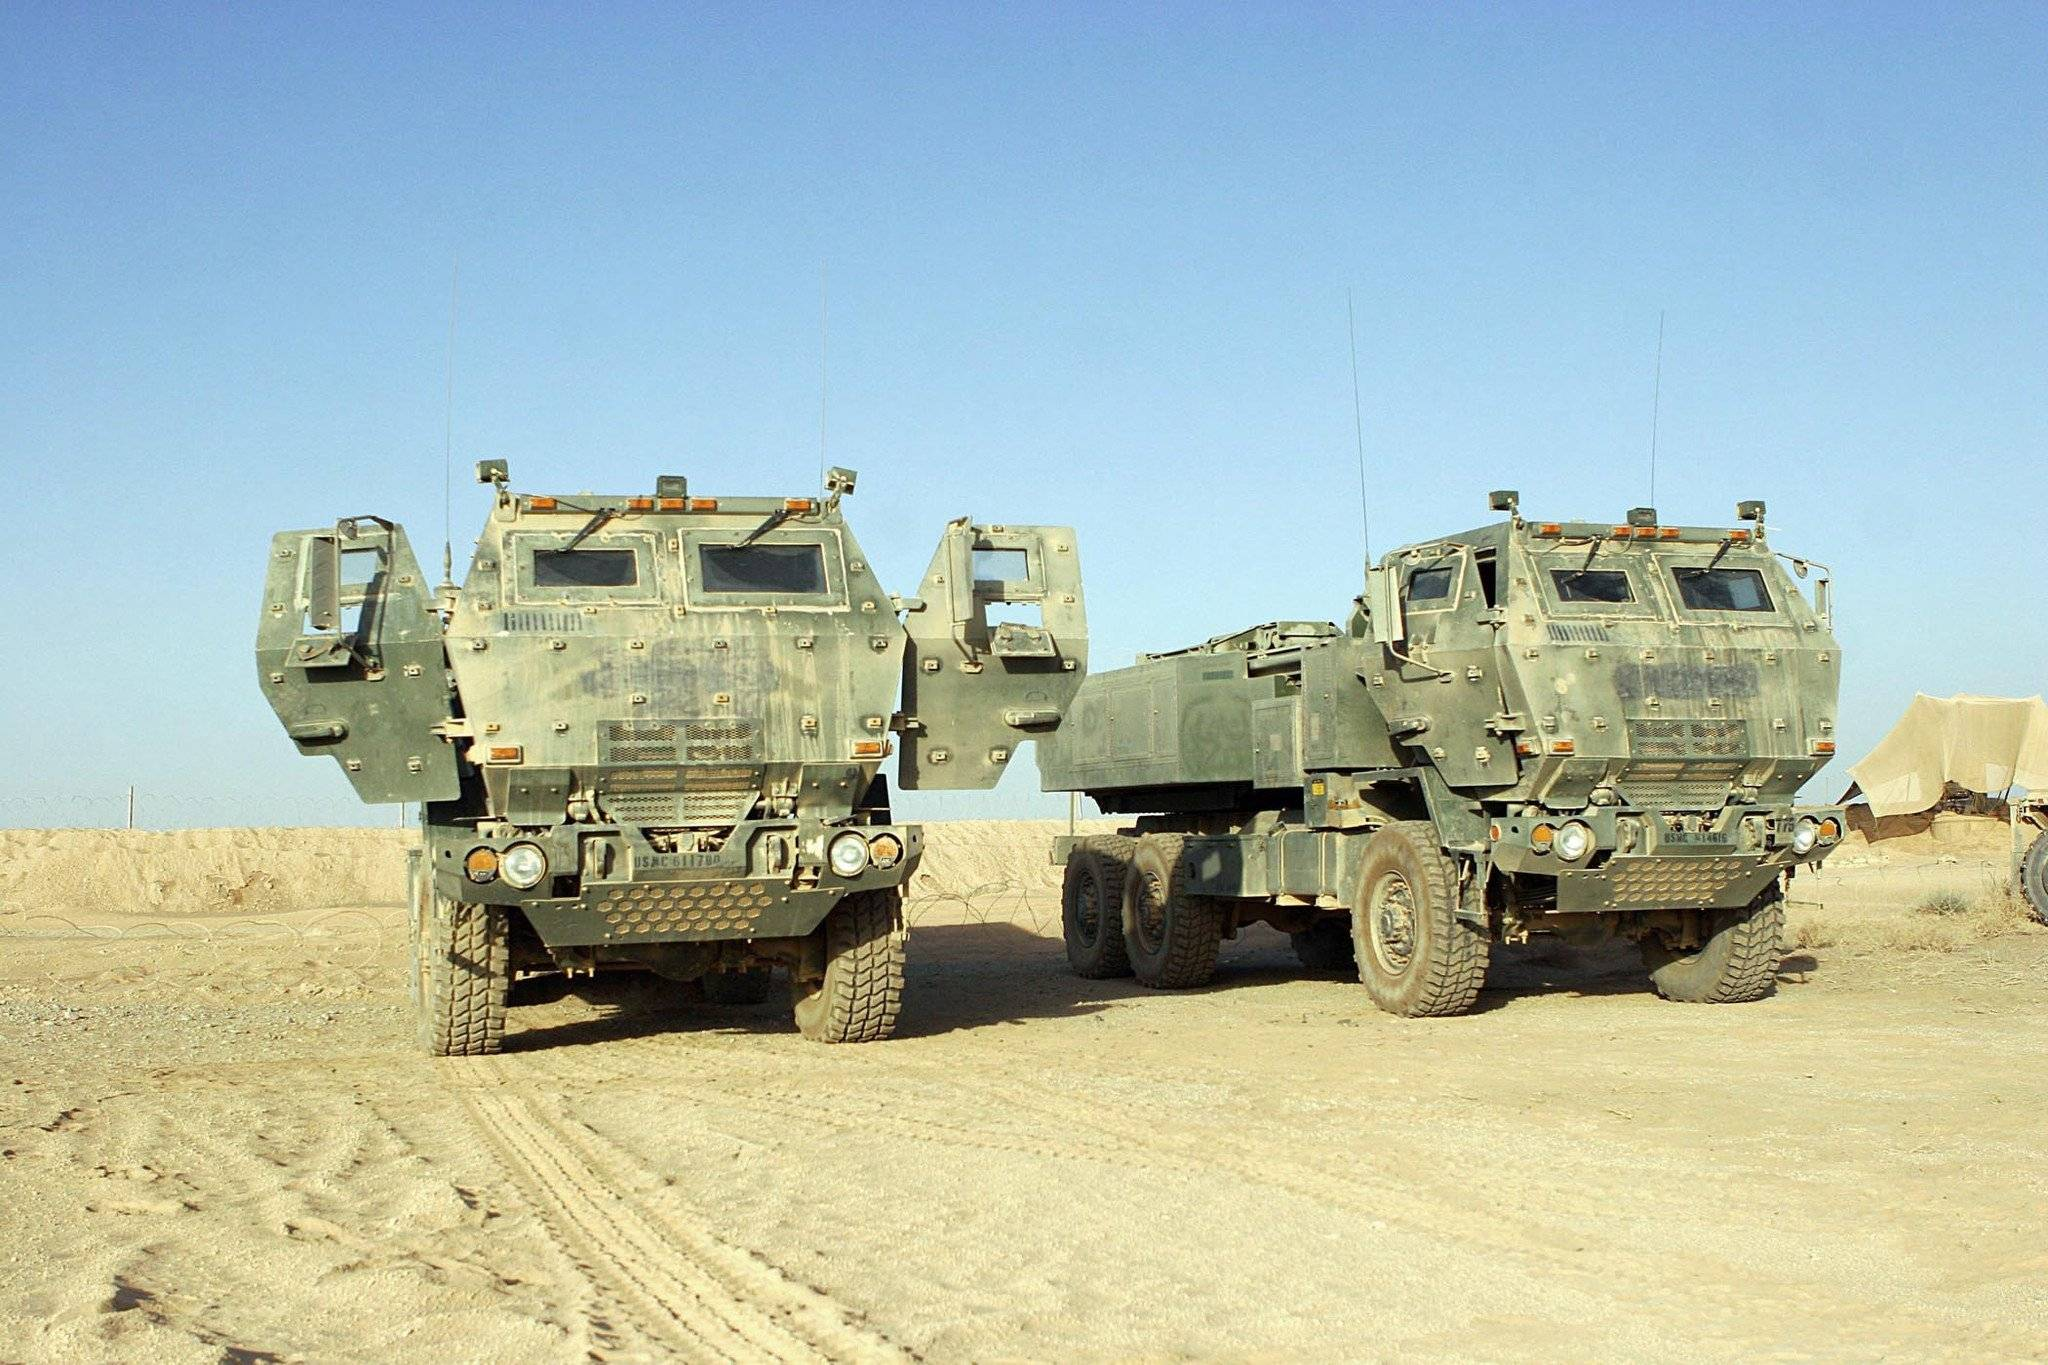 FAMILY OF MEDIUM TACTICAL VEHICLES